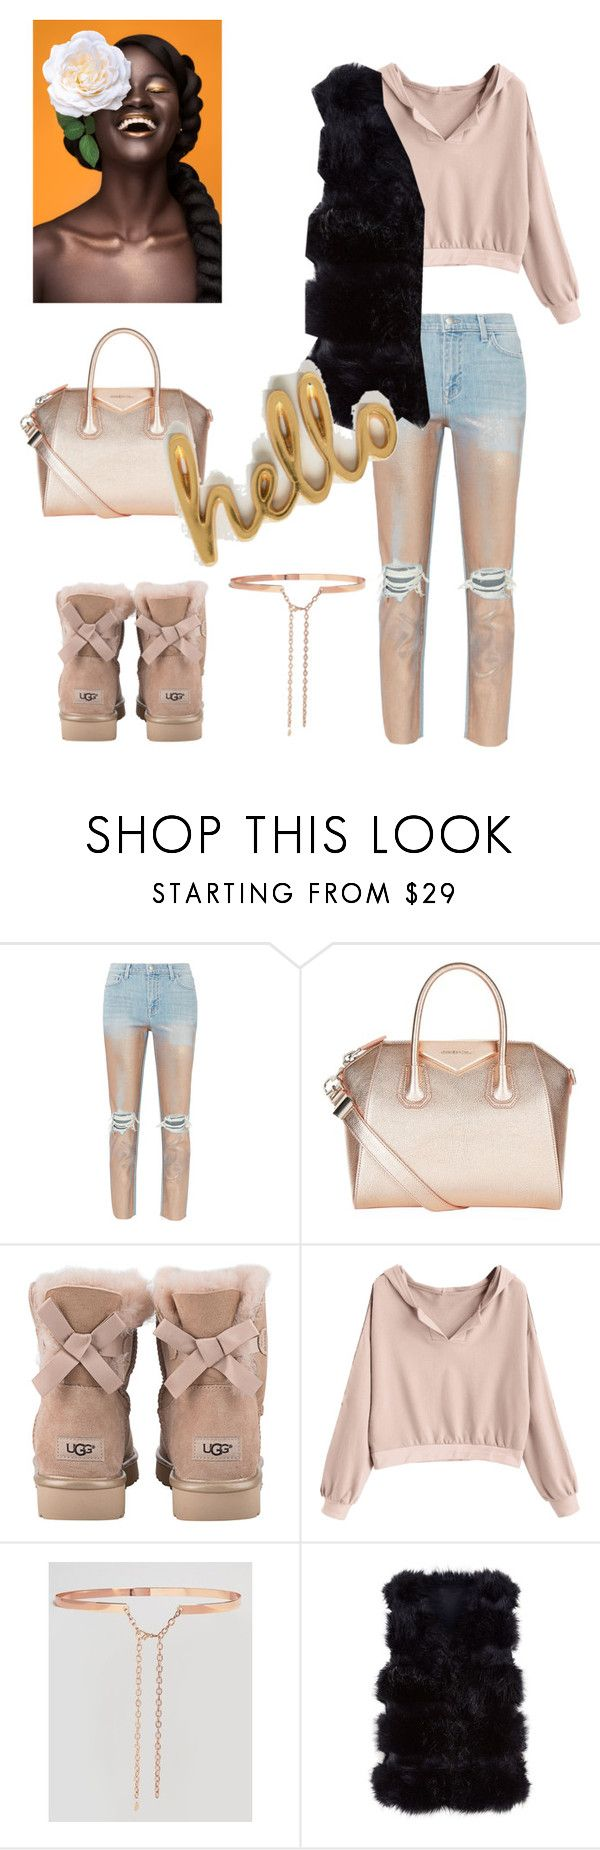 """Goodie Hoodie"" by desireervin ❤ liked on Polyvore featuring L'Agence, Givenchy, UGG, Johnny Loves Rosie and Bombay Duck"